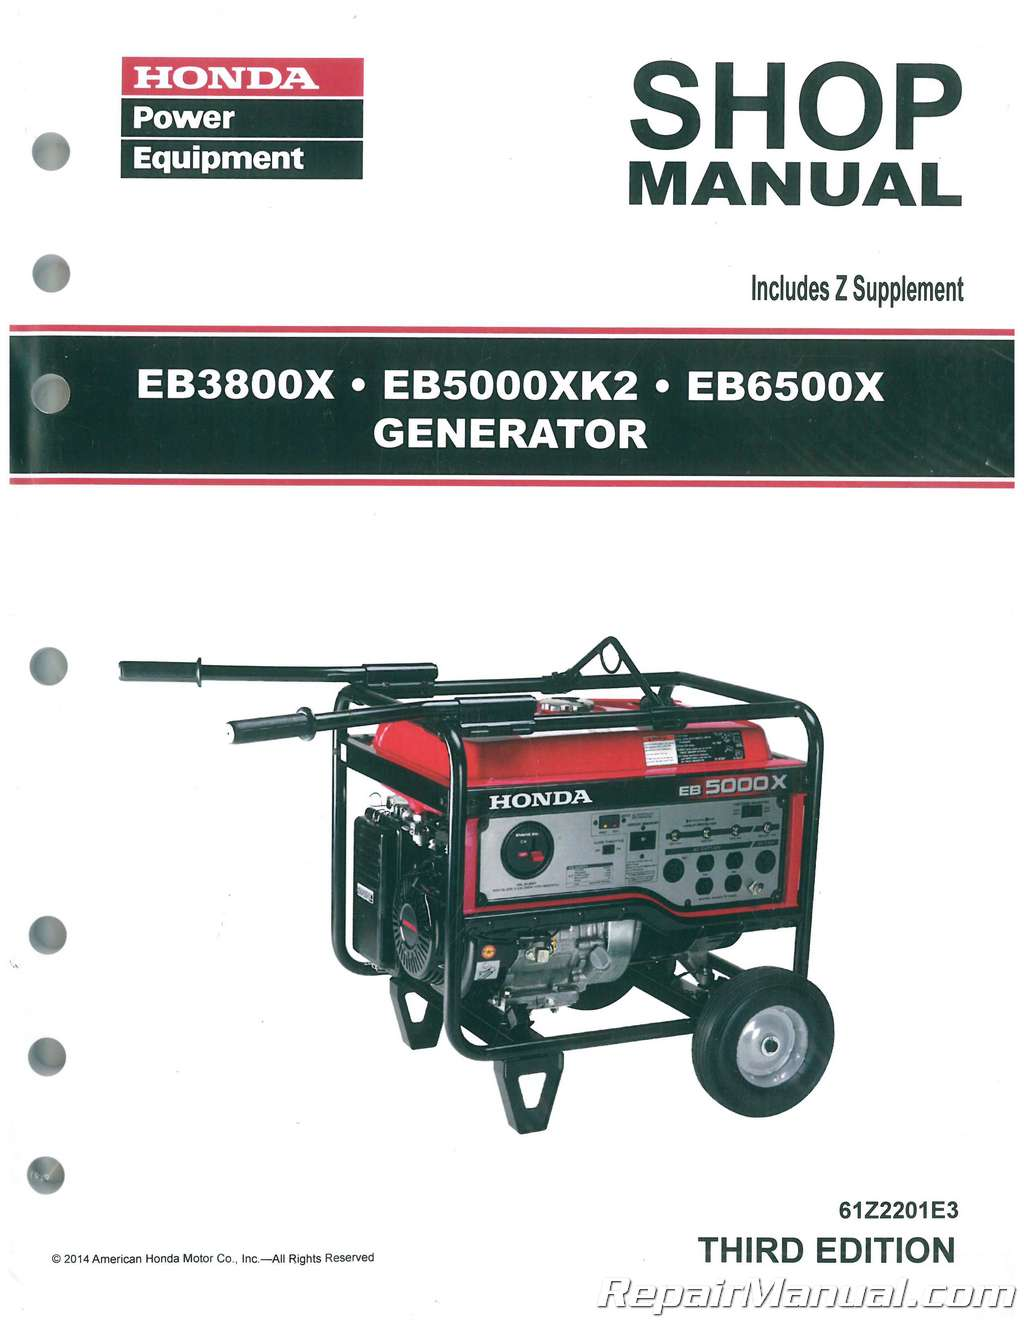 honda eb3800x eb5000xk2 eb6500x generator shop manual rh repairmanual com honda eb6500x parts manual honda eb6500 parts manual